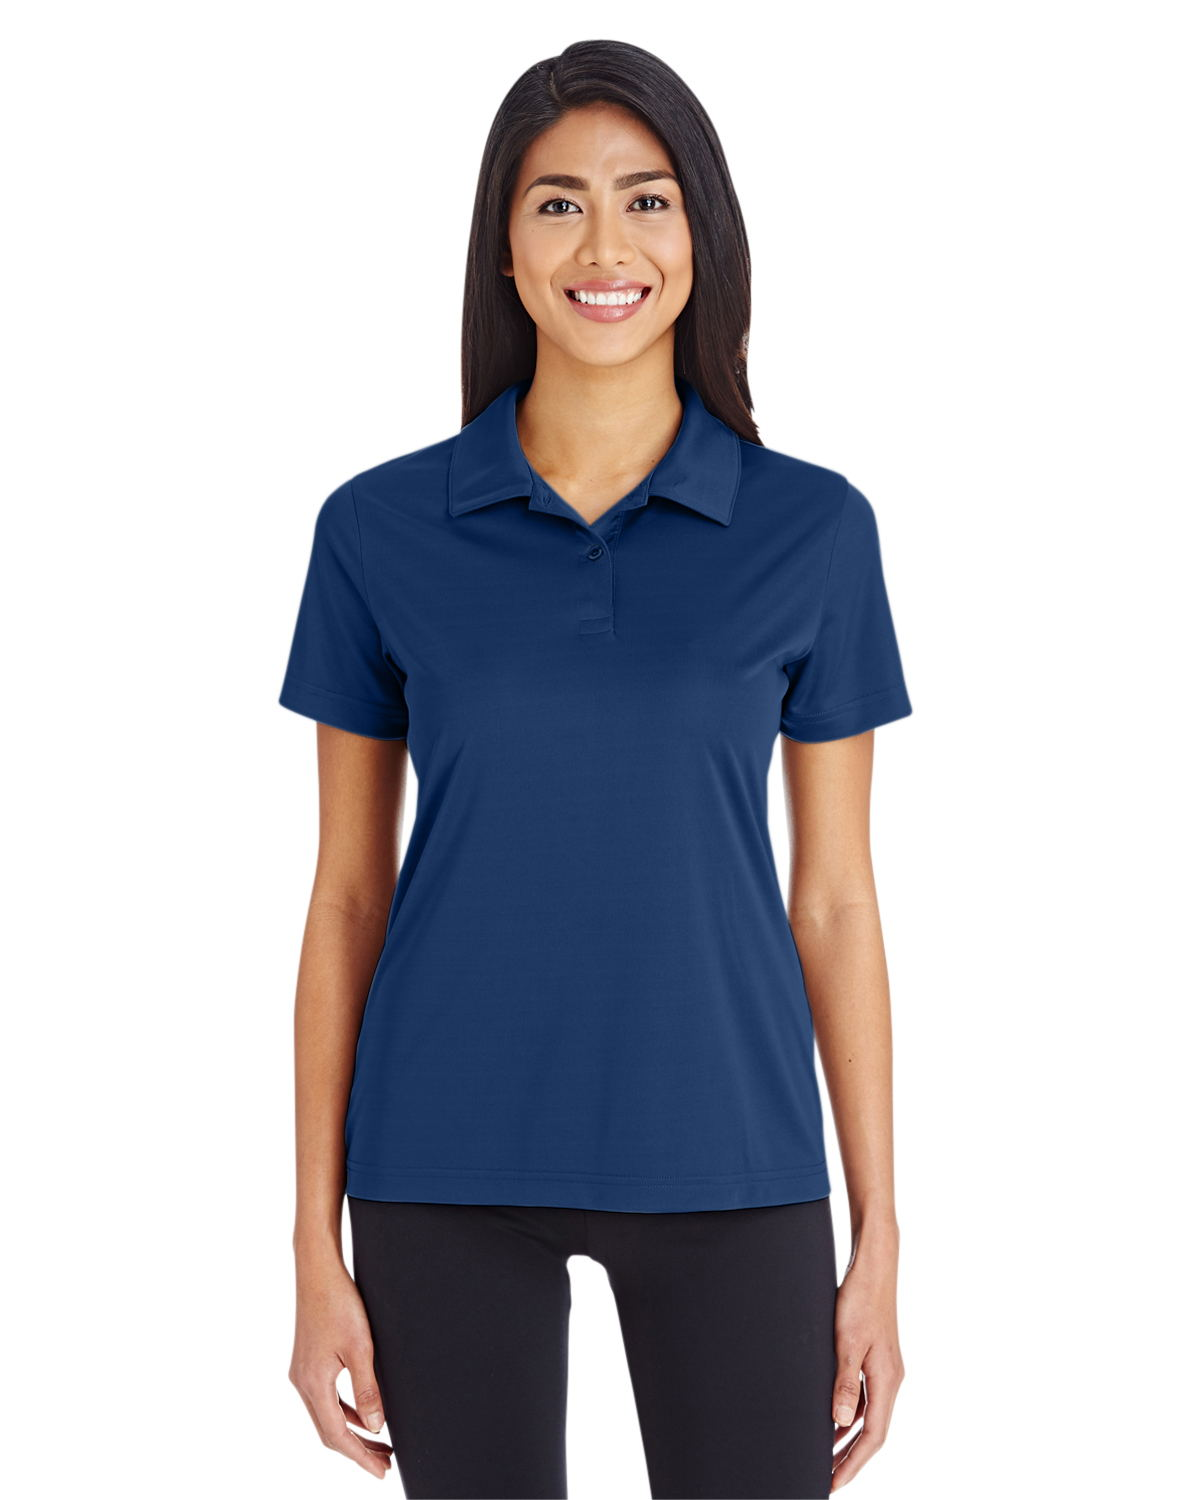 Team 365 TT51W - Women's Zone Performance Polo